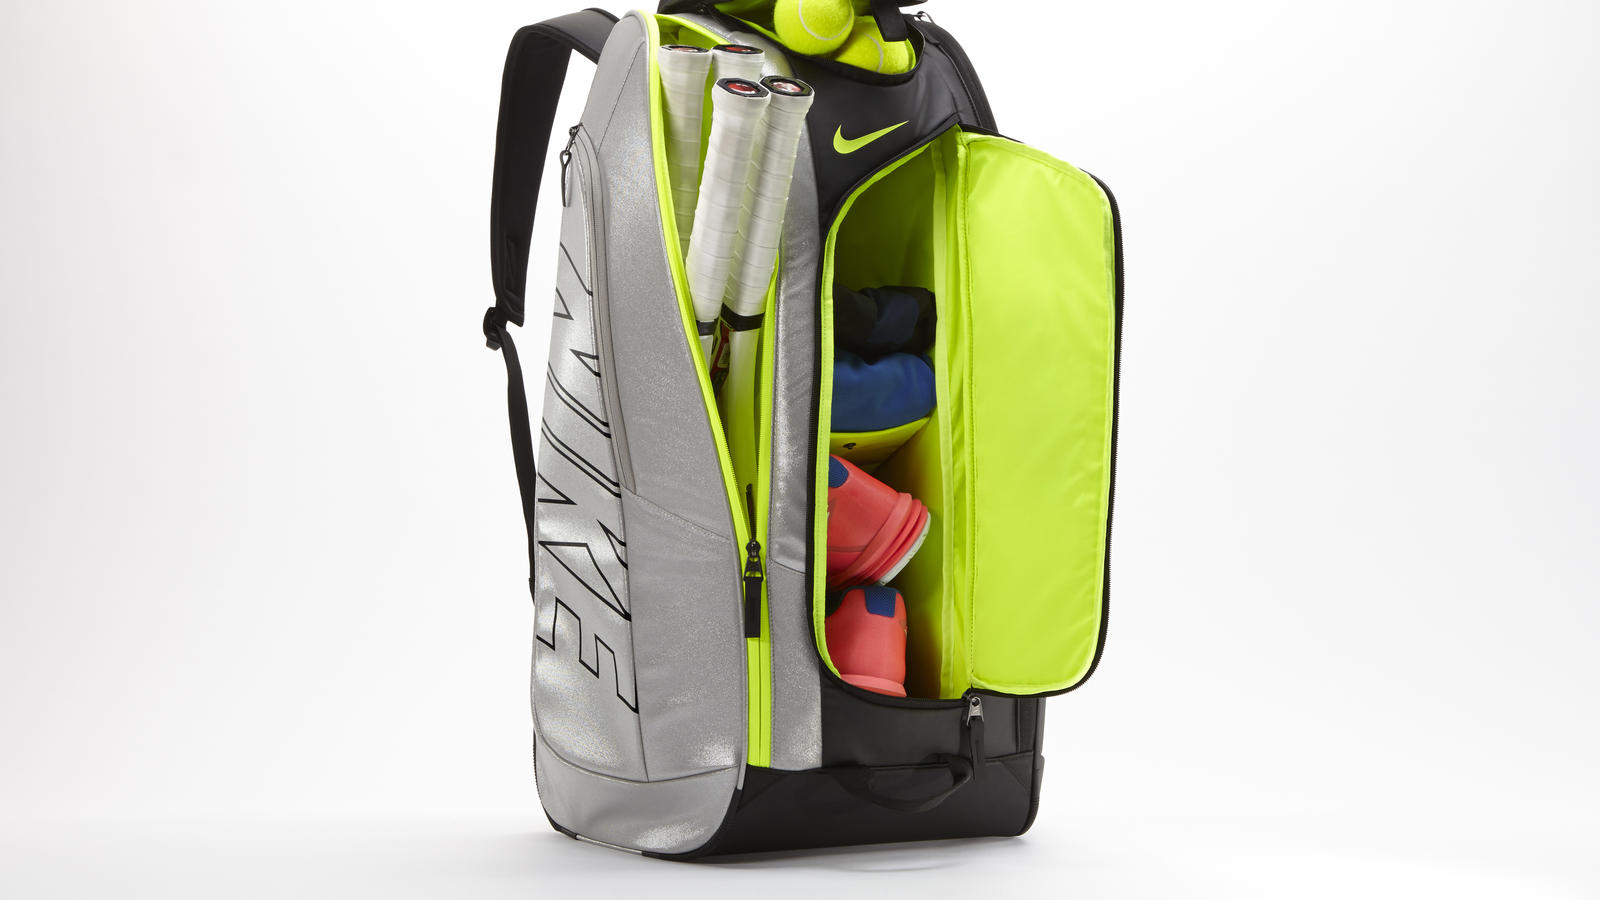 Nike Court Tech 1 Tennis Bag